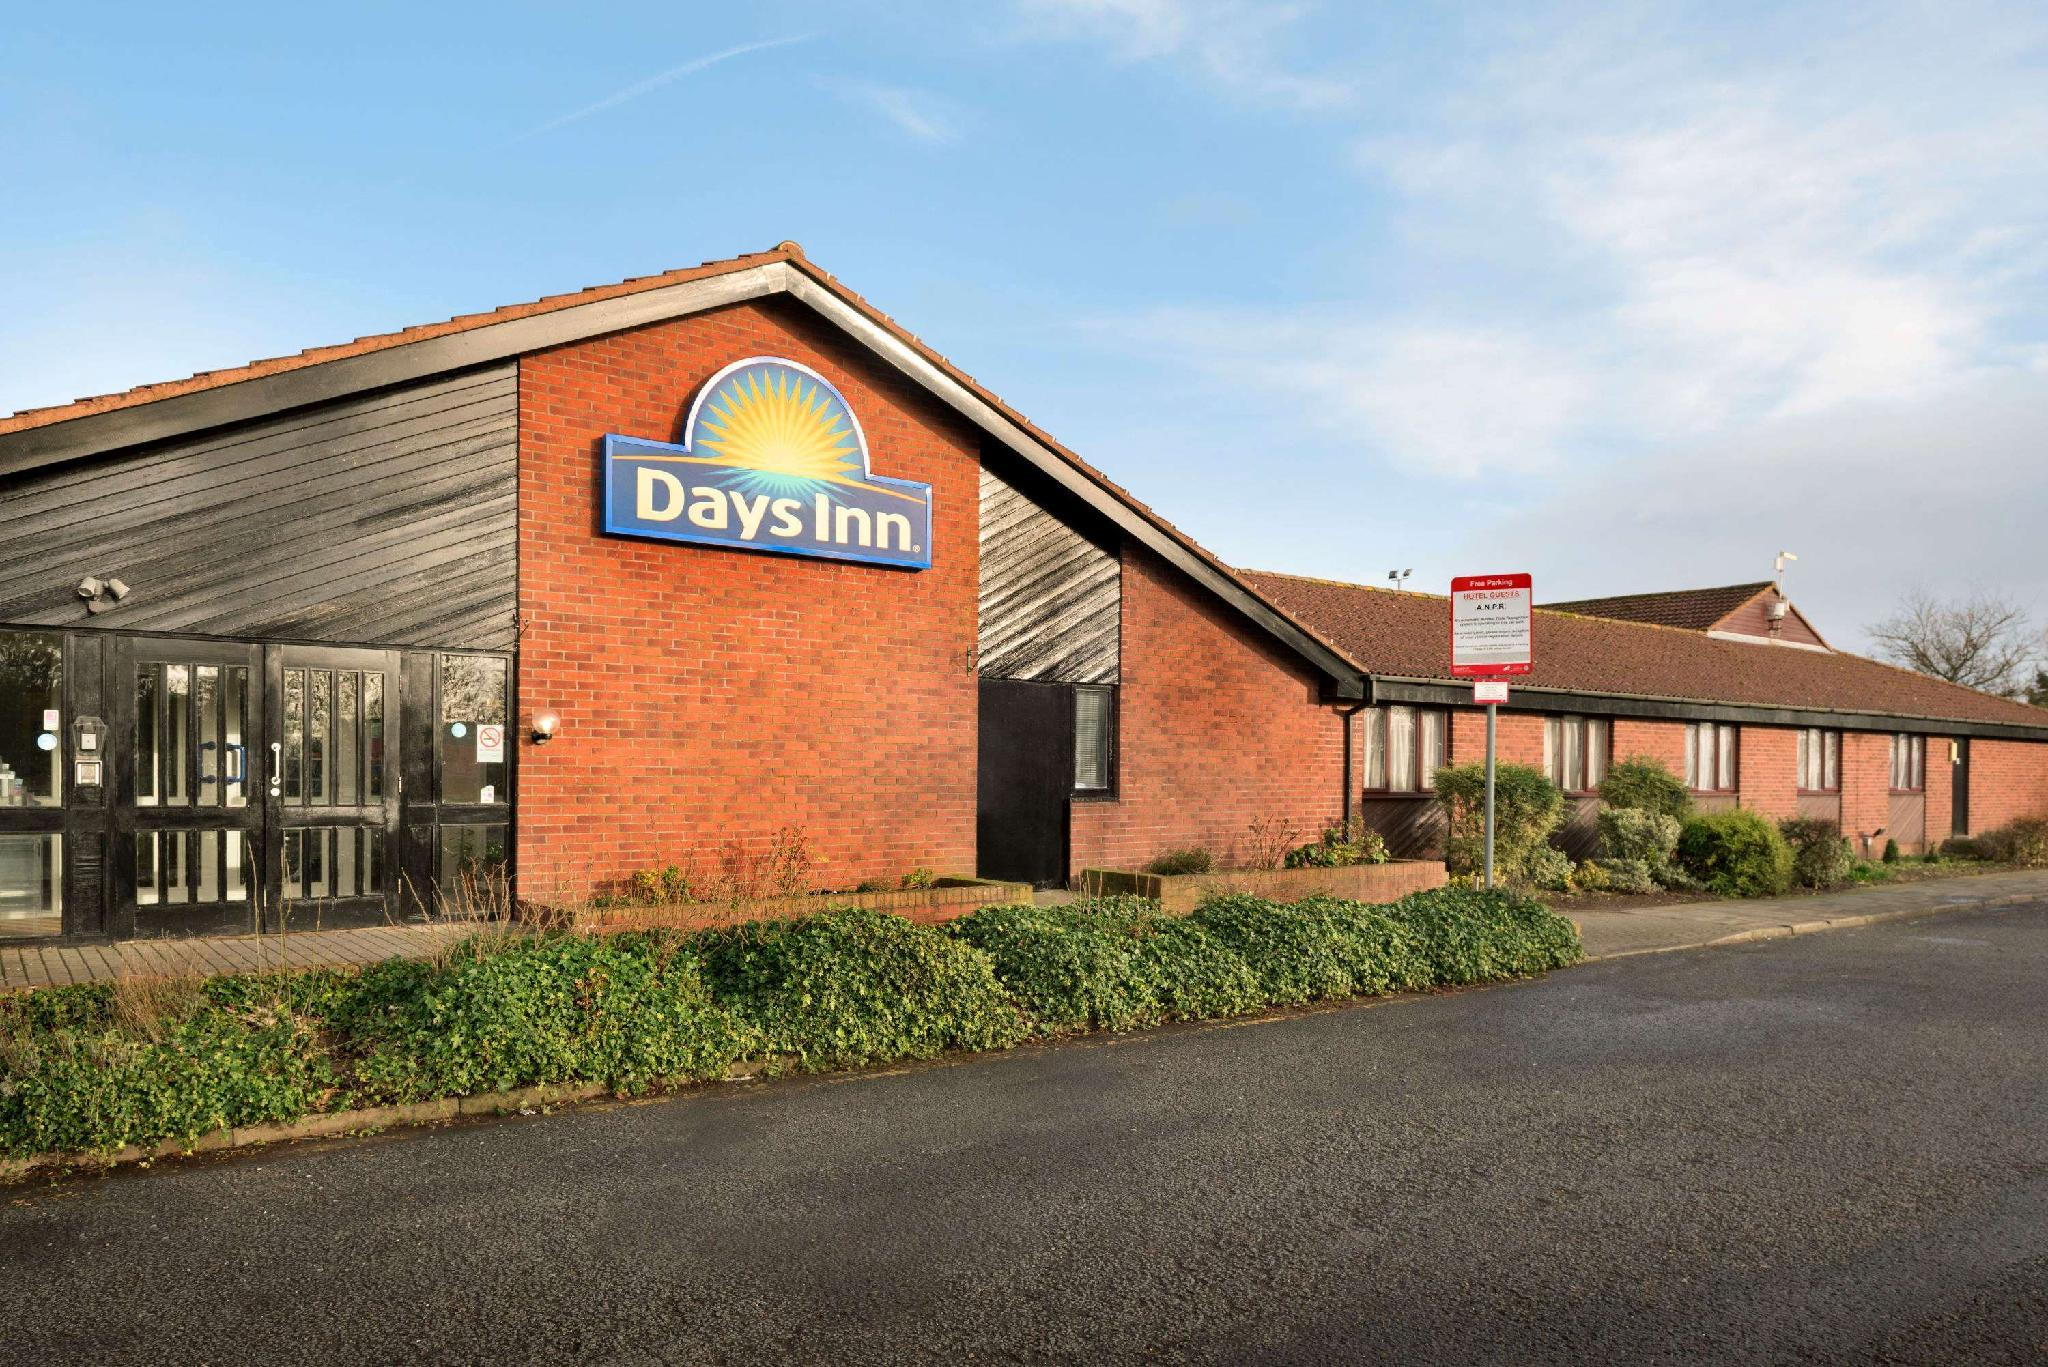 Hotels Reviews: Days Inn Gretna Green M74 – Picture, Room Prices & Deals